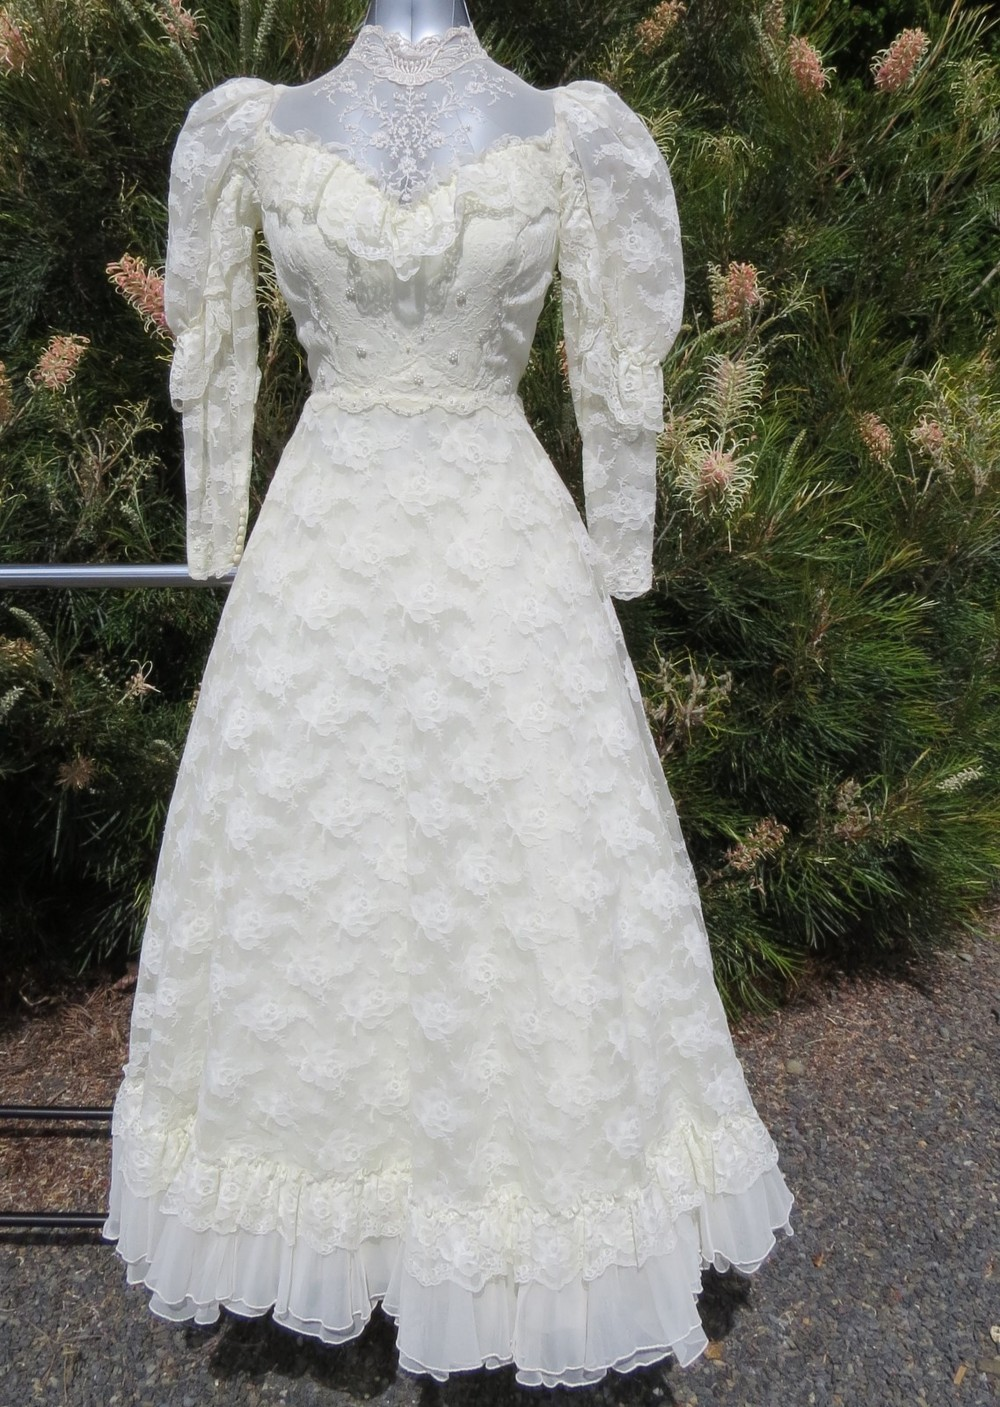 Ball gown second hand wedding dress on sale for Second hand wedding dresses for sale